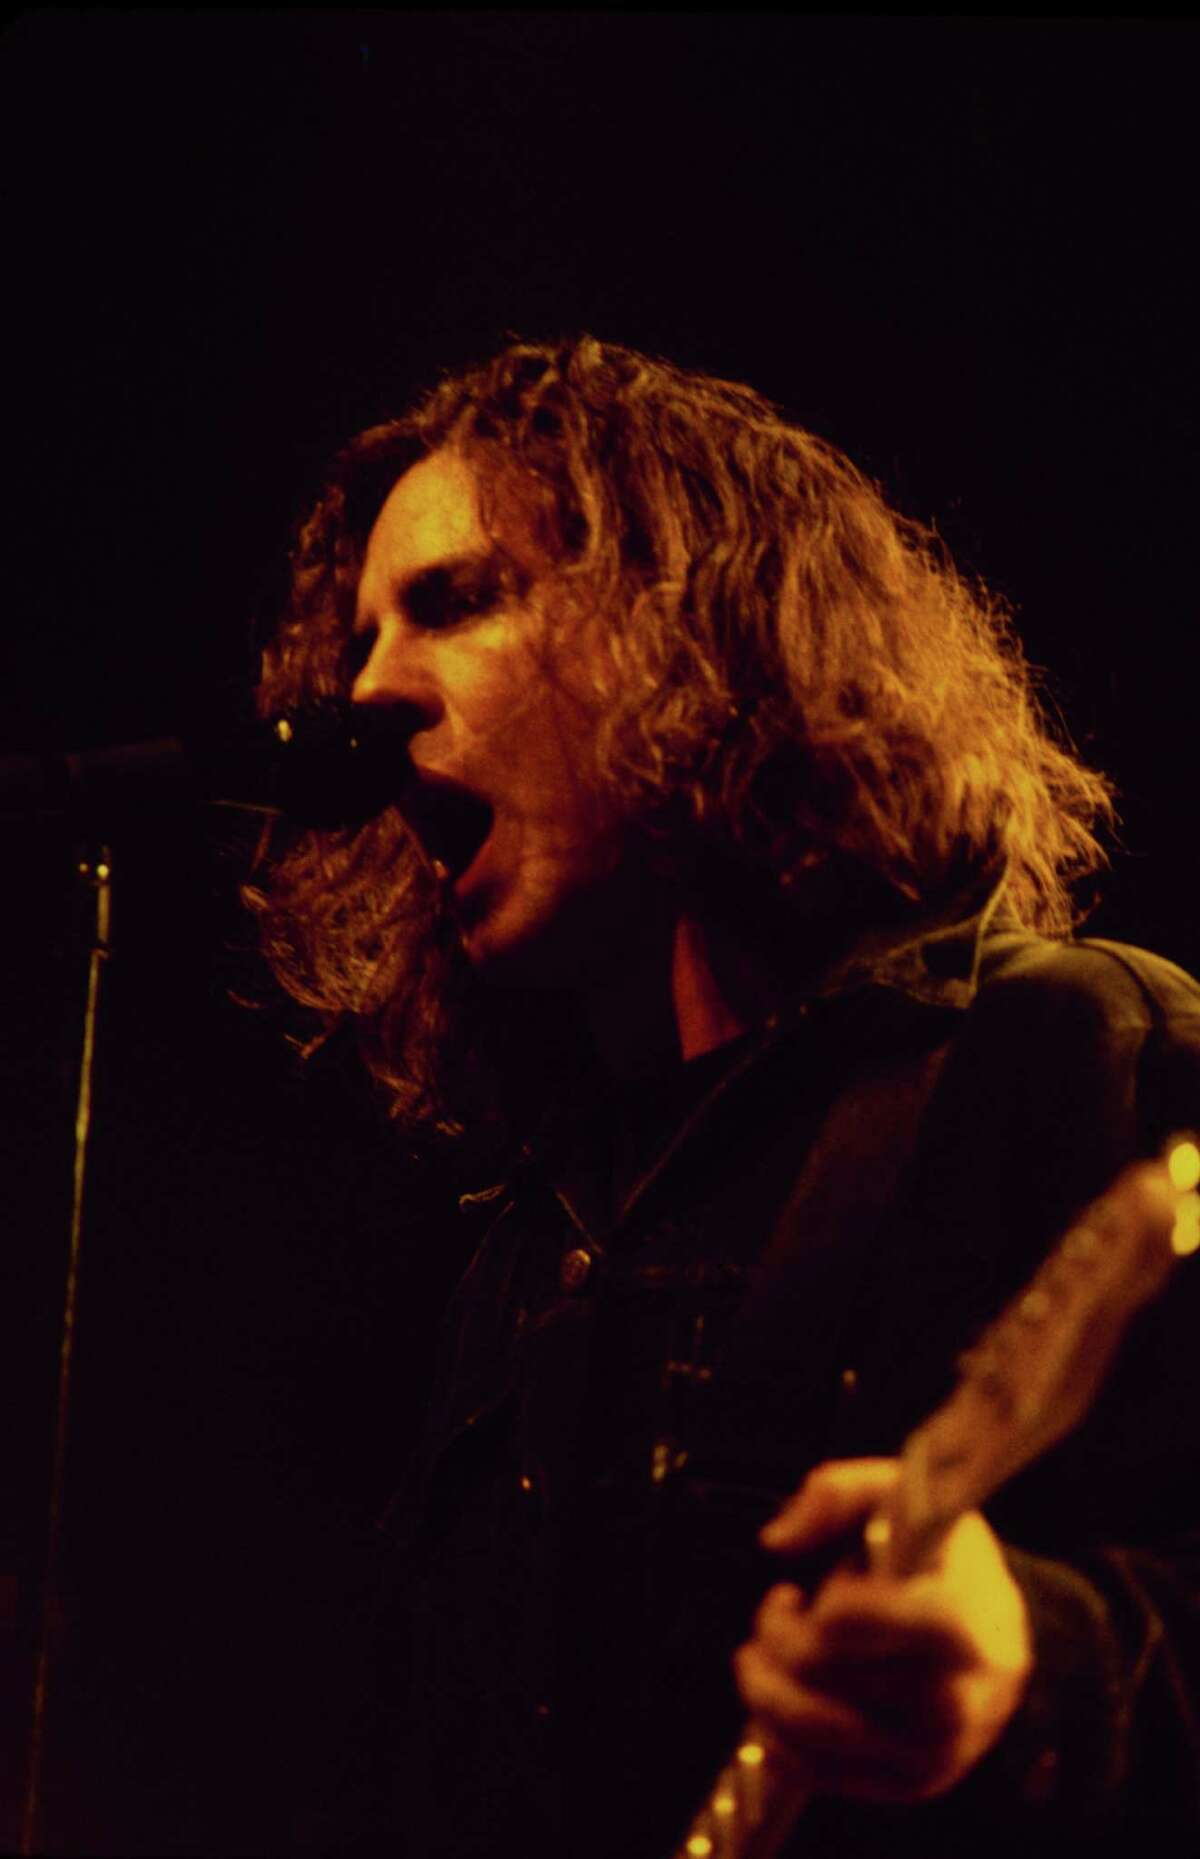 Though known by many fans as a life-affirming anthem survival, Pearl Jam's early hit